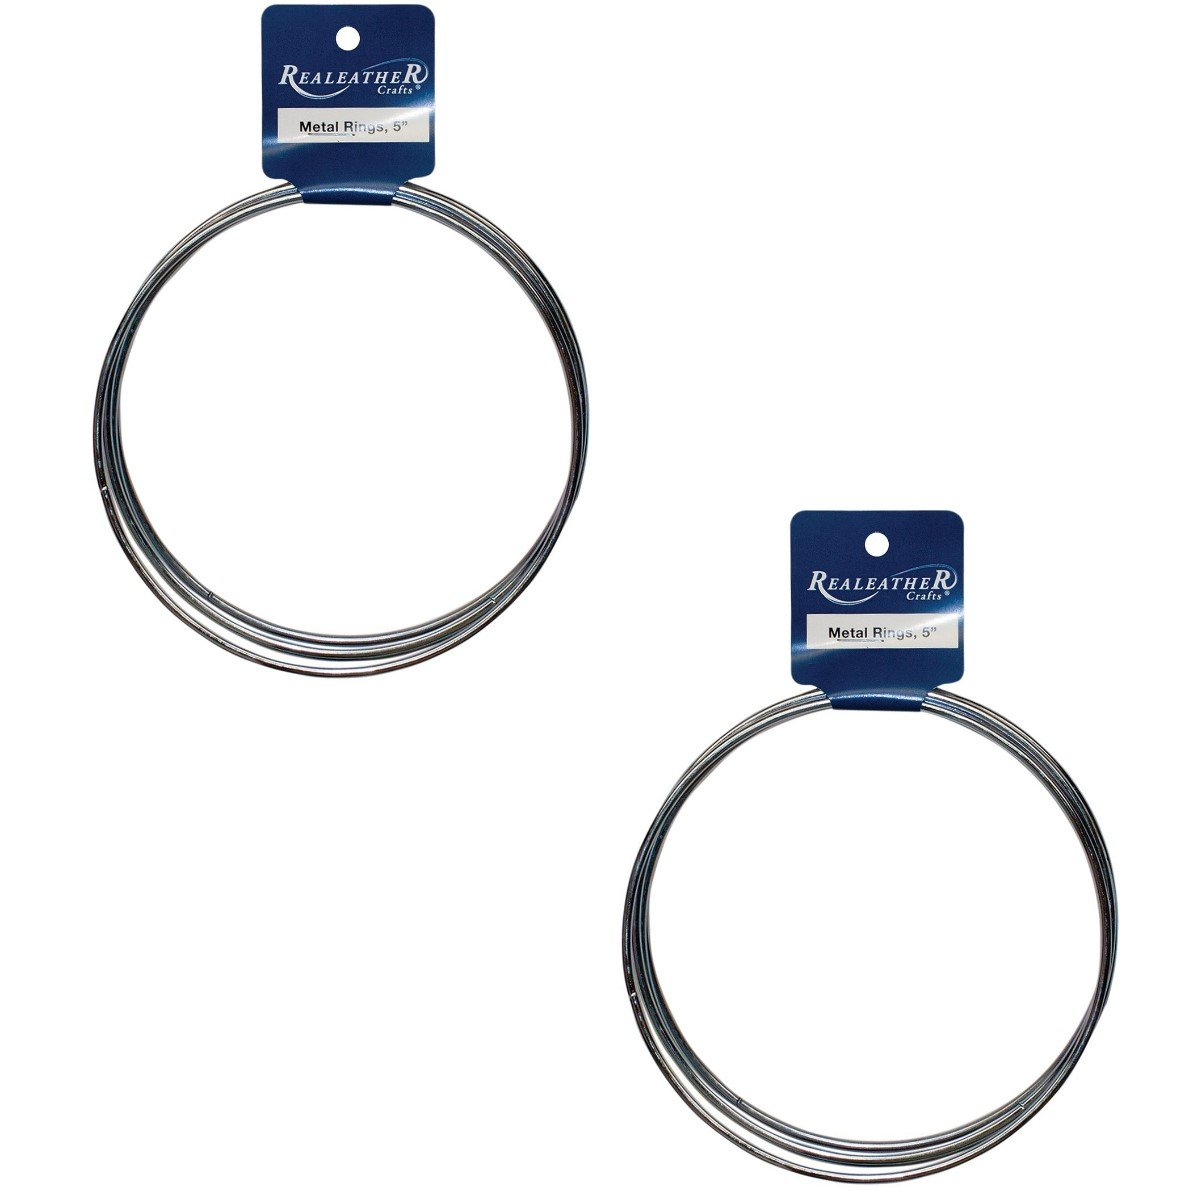 Realeather Crafts Zinc Metal Rings, 5-Inch, 8 Rings (2 Packs of 4 Rings Each)